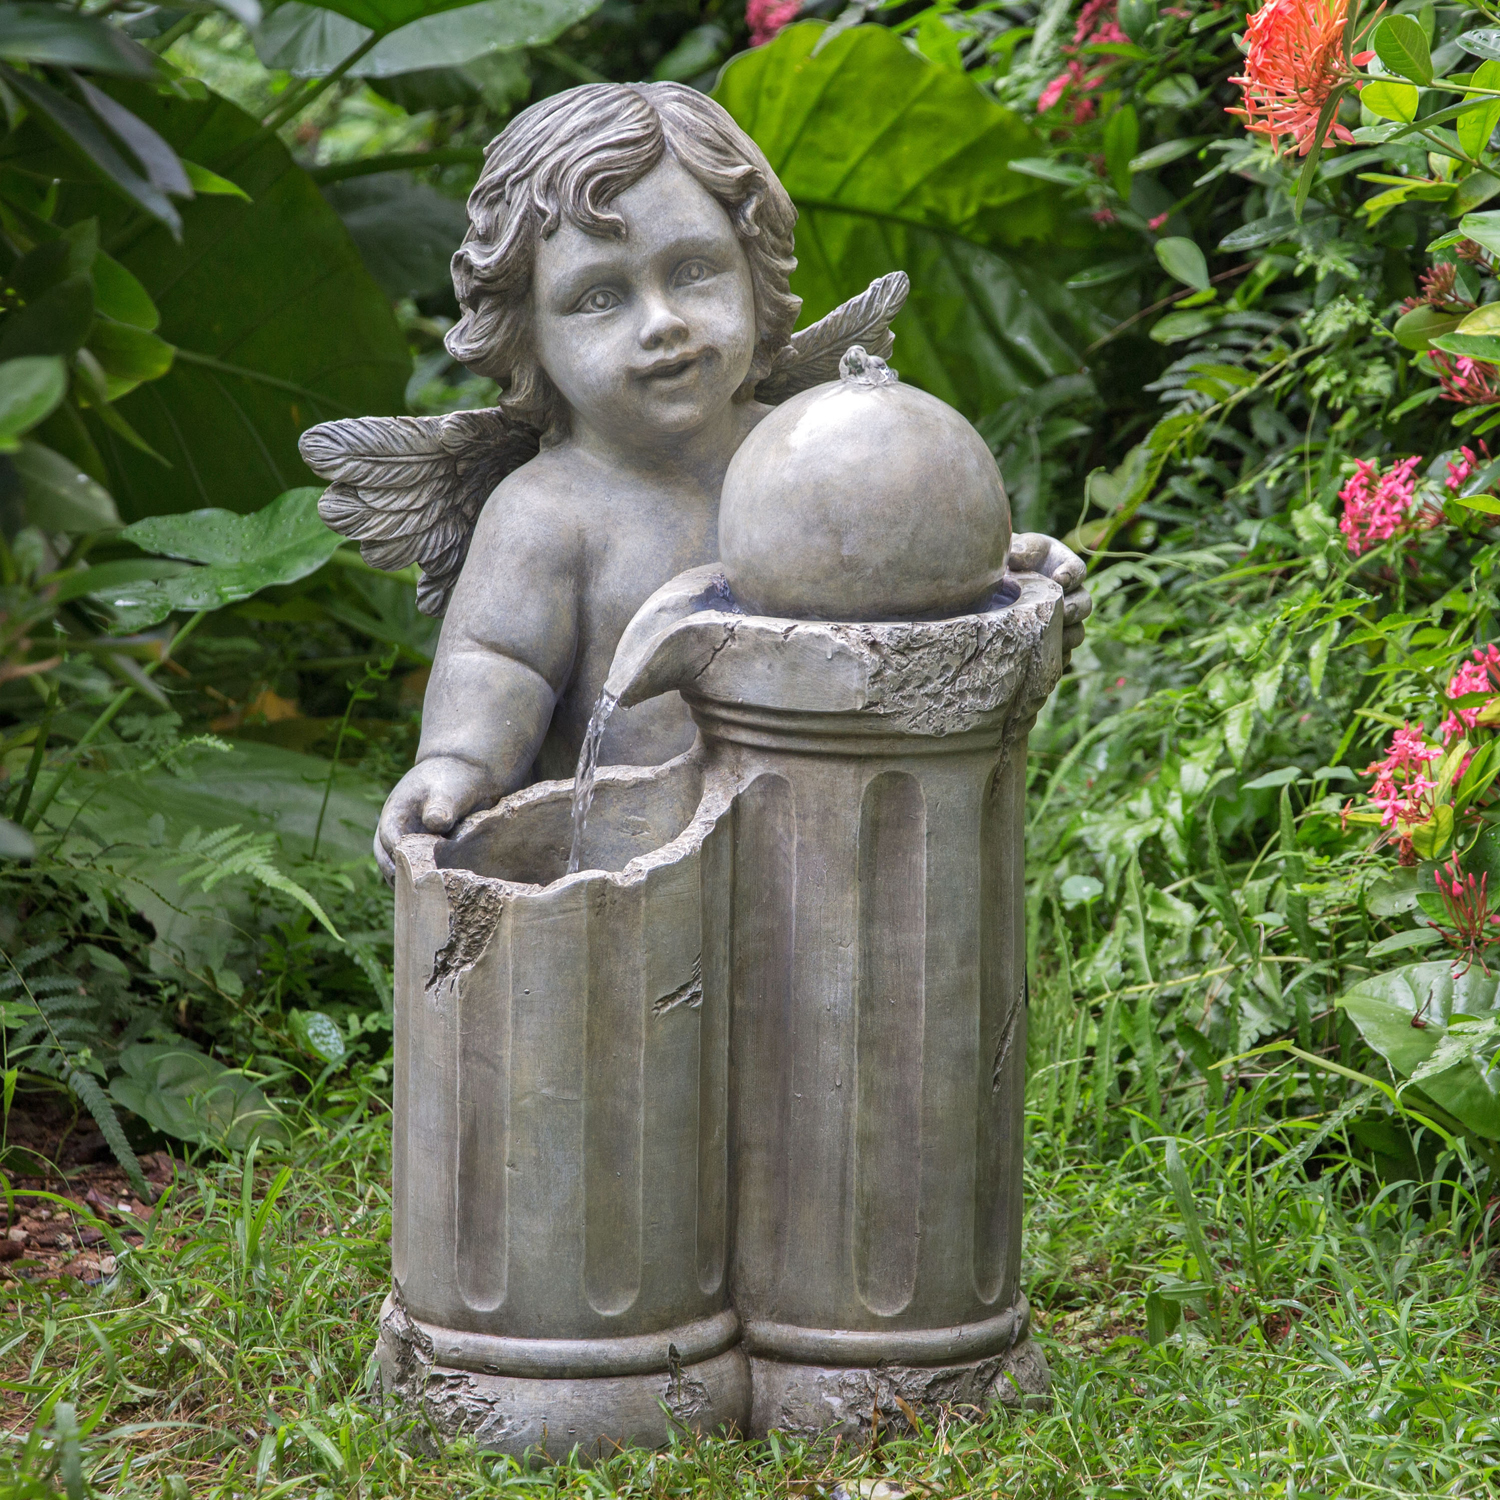 Mainstays Outdoor Cherub Pedestal Fountain